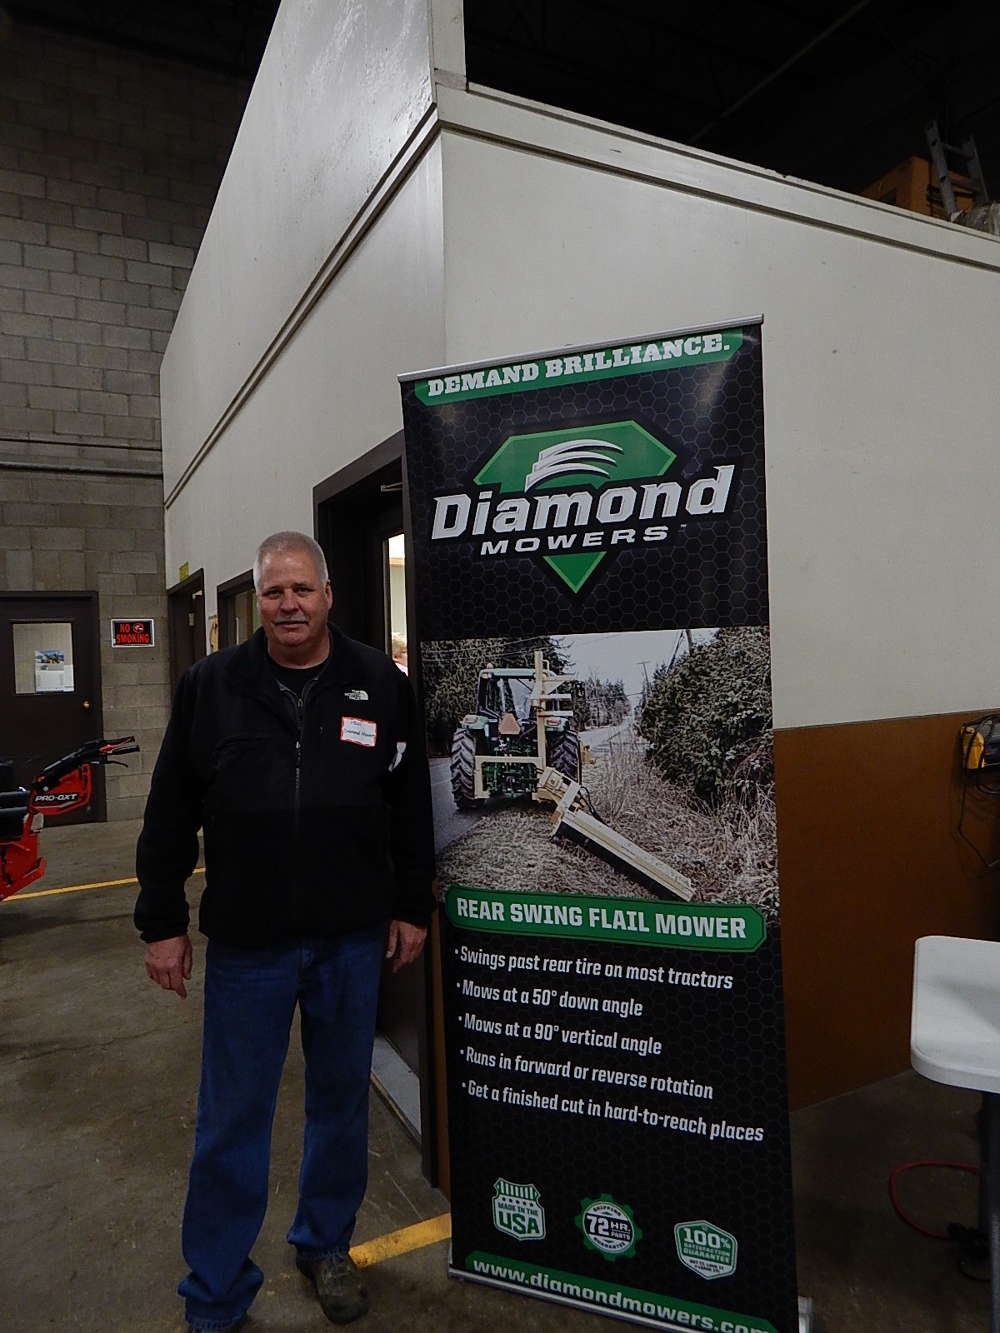 Paul Schreurs, Diamond Products regional sales manager, Sioux Falls, S.D., discusses the  benefits of Diamond flail mowers.